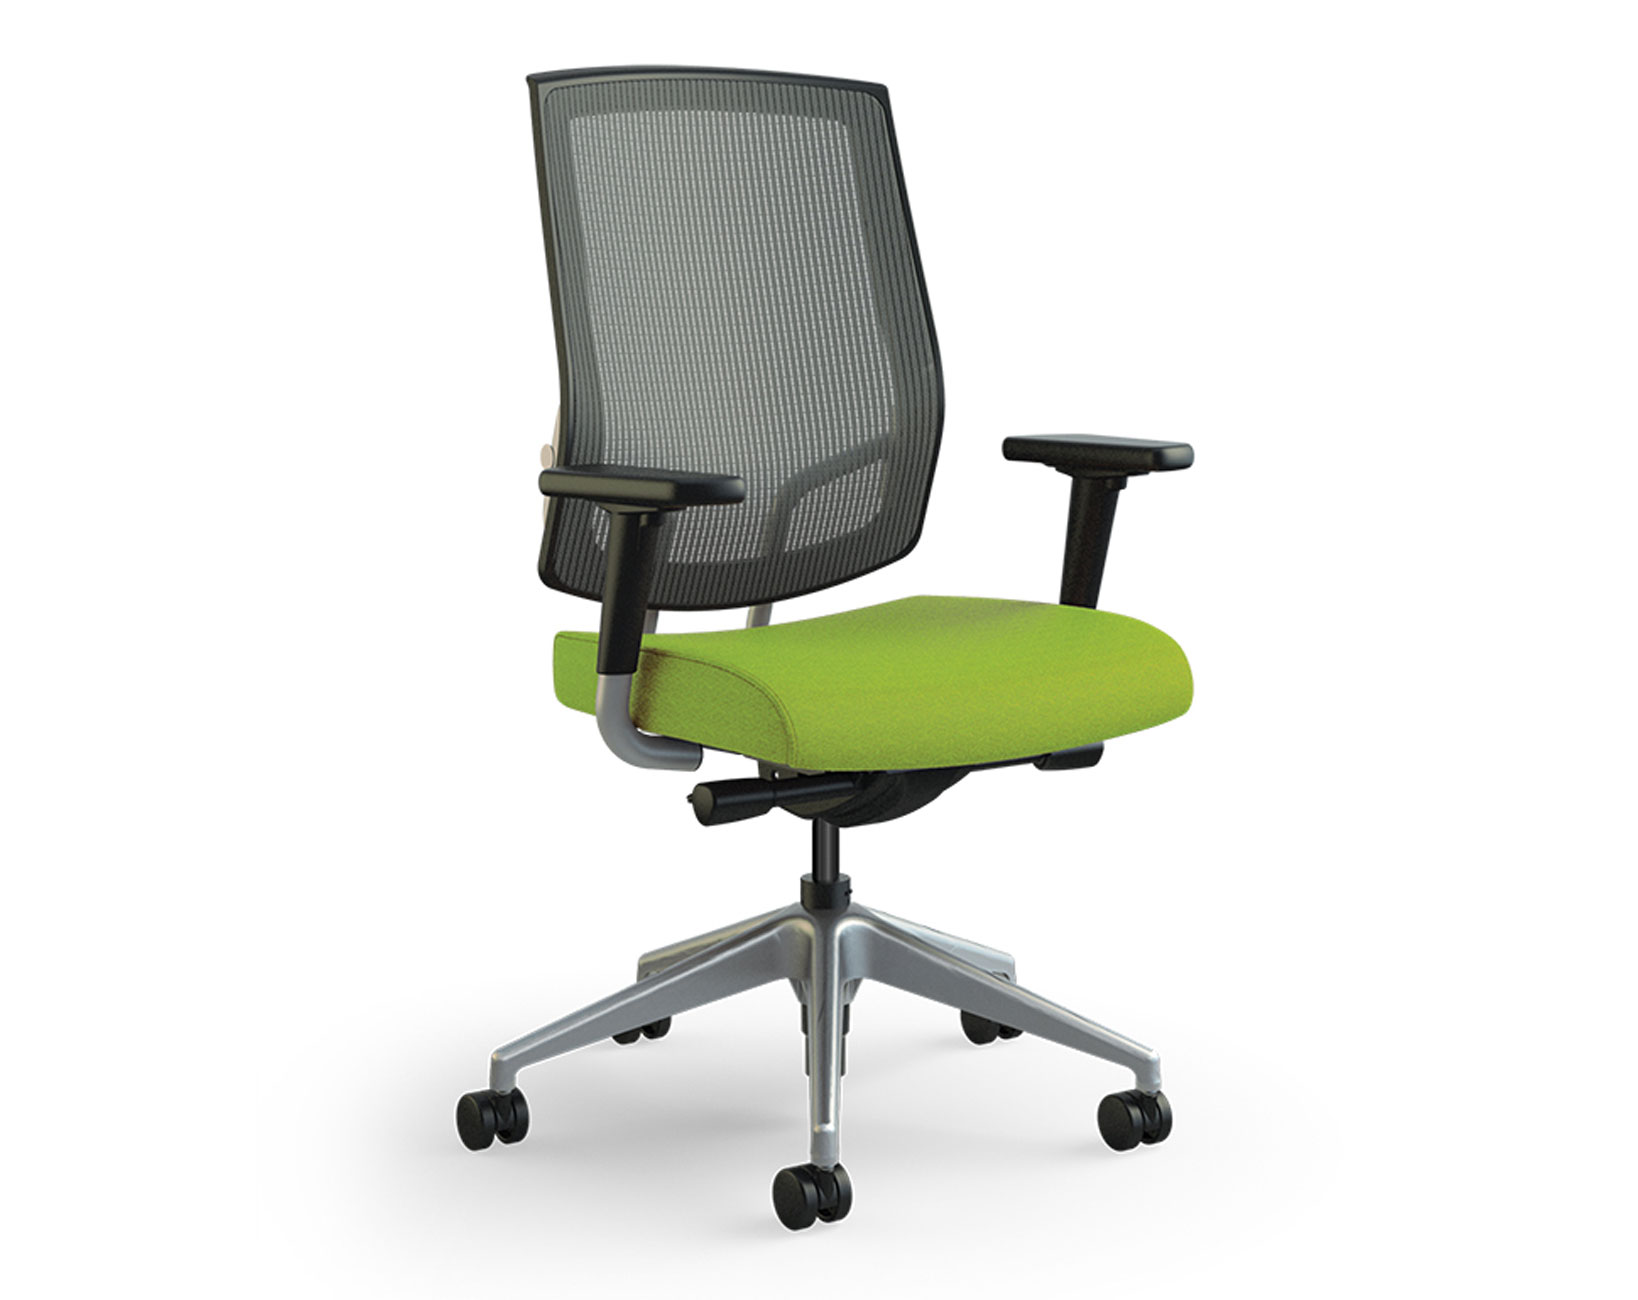 Sit On It Chairs Focus Mesh Back Task Chair By Sit On It Office Furniture